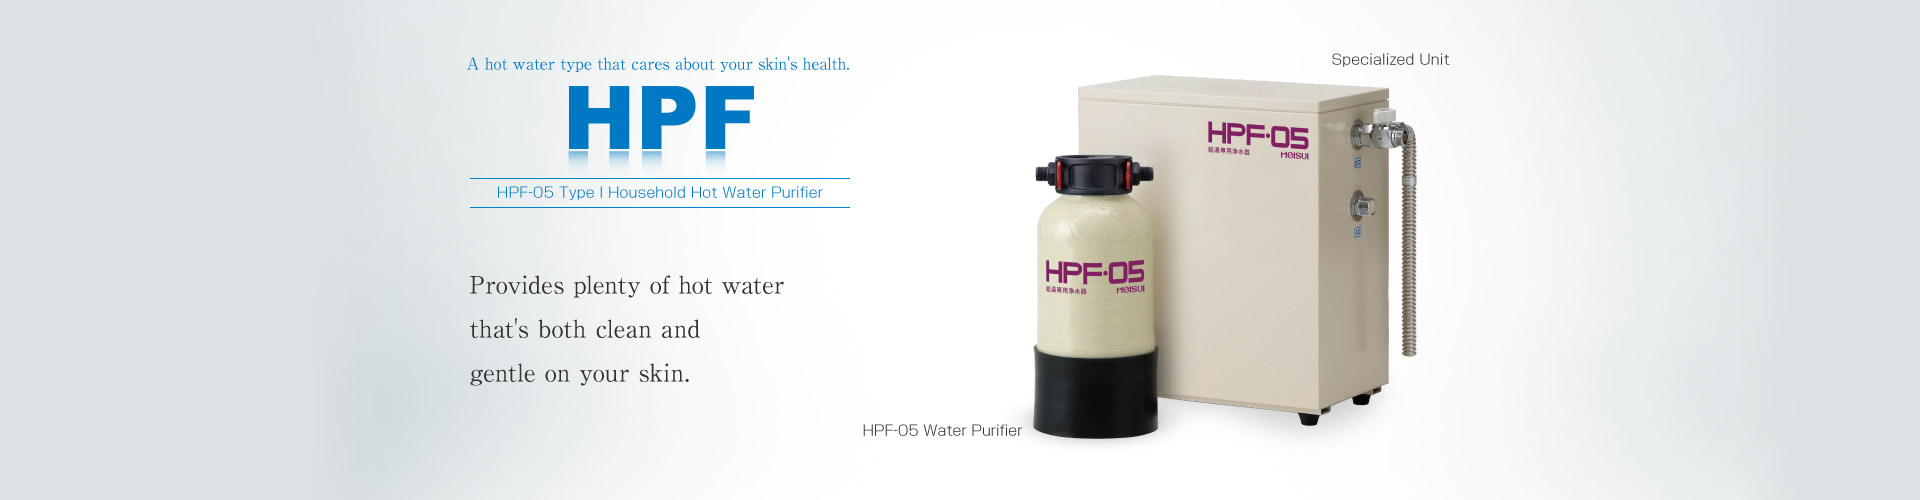 HPF-05 Type I Hot Water Purifier